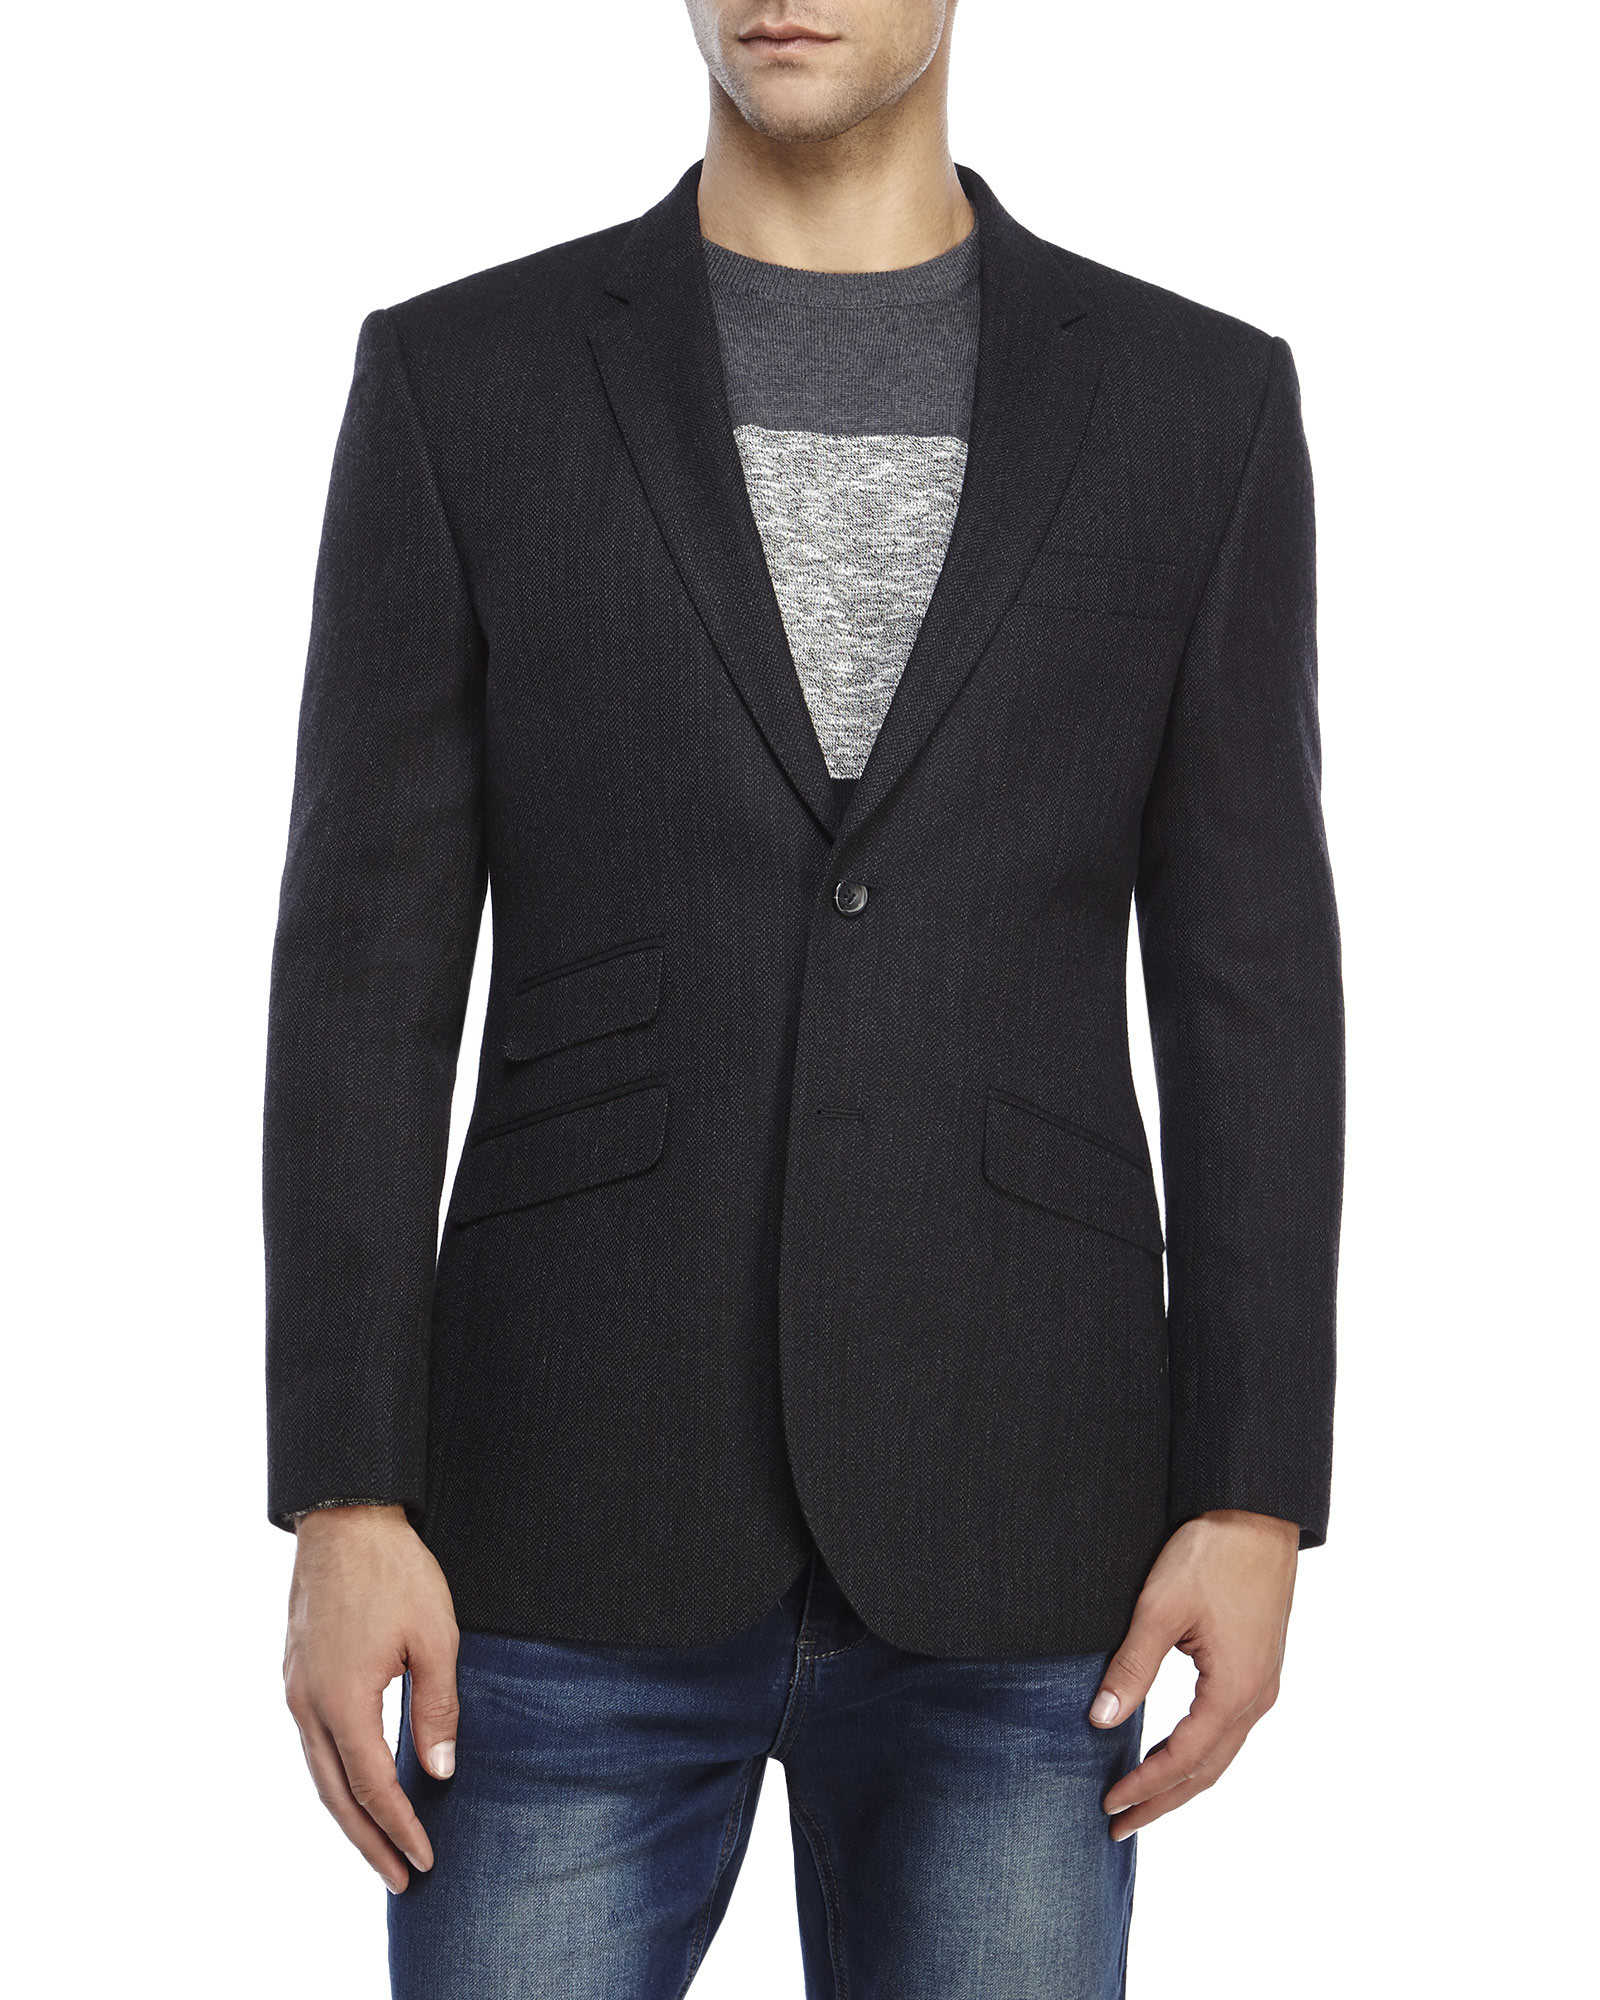 English laundry Tweed Sport Coat in Black for Men | Lyst